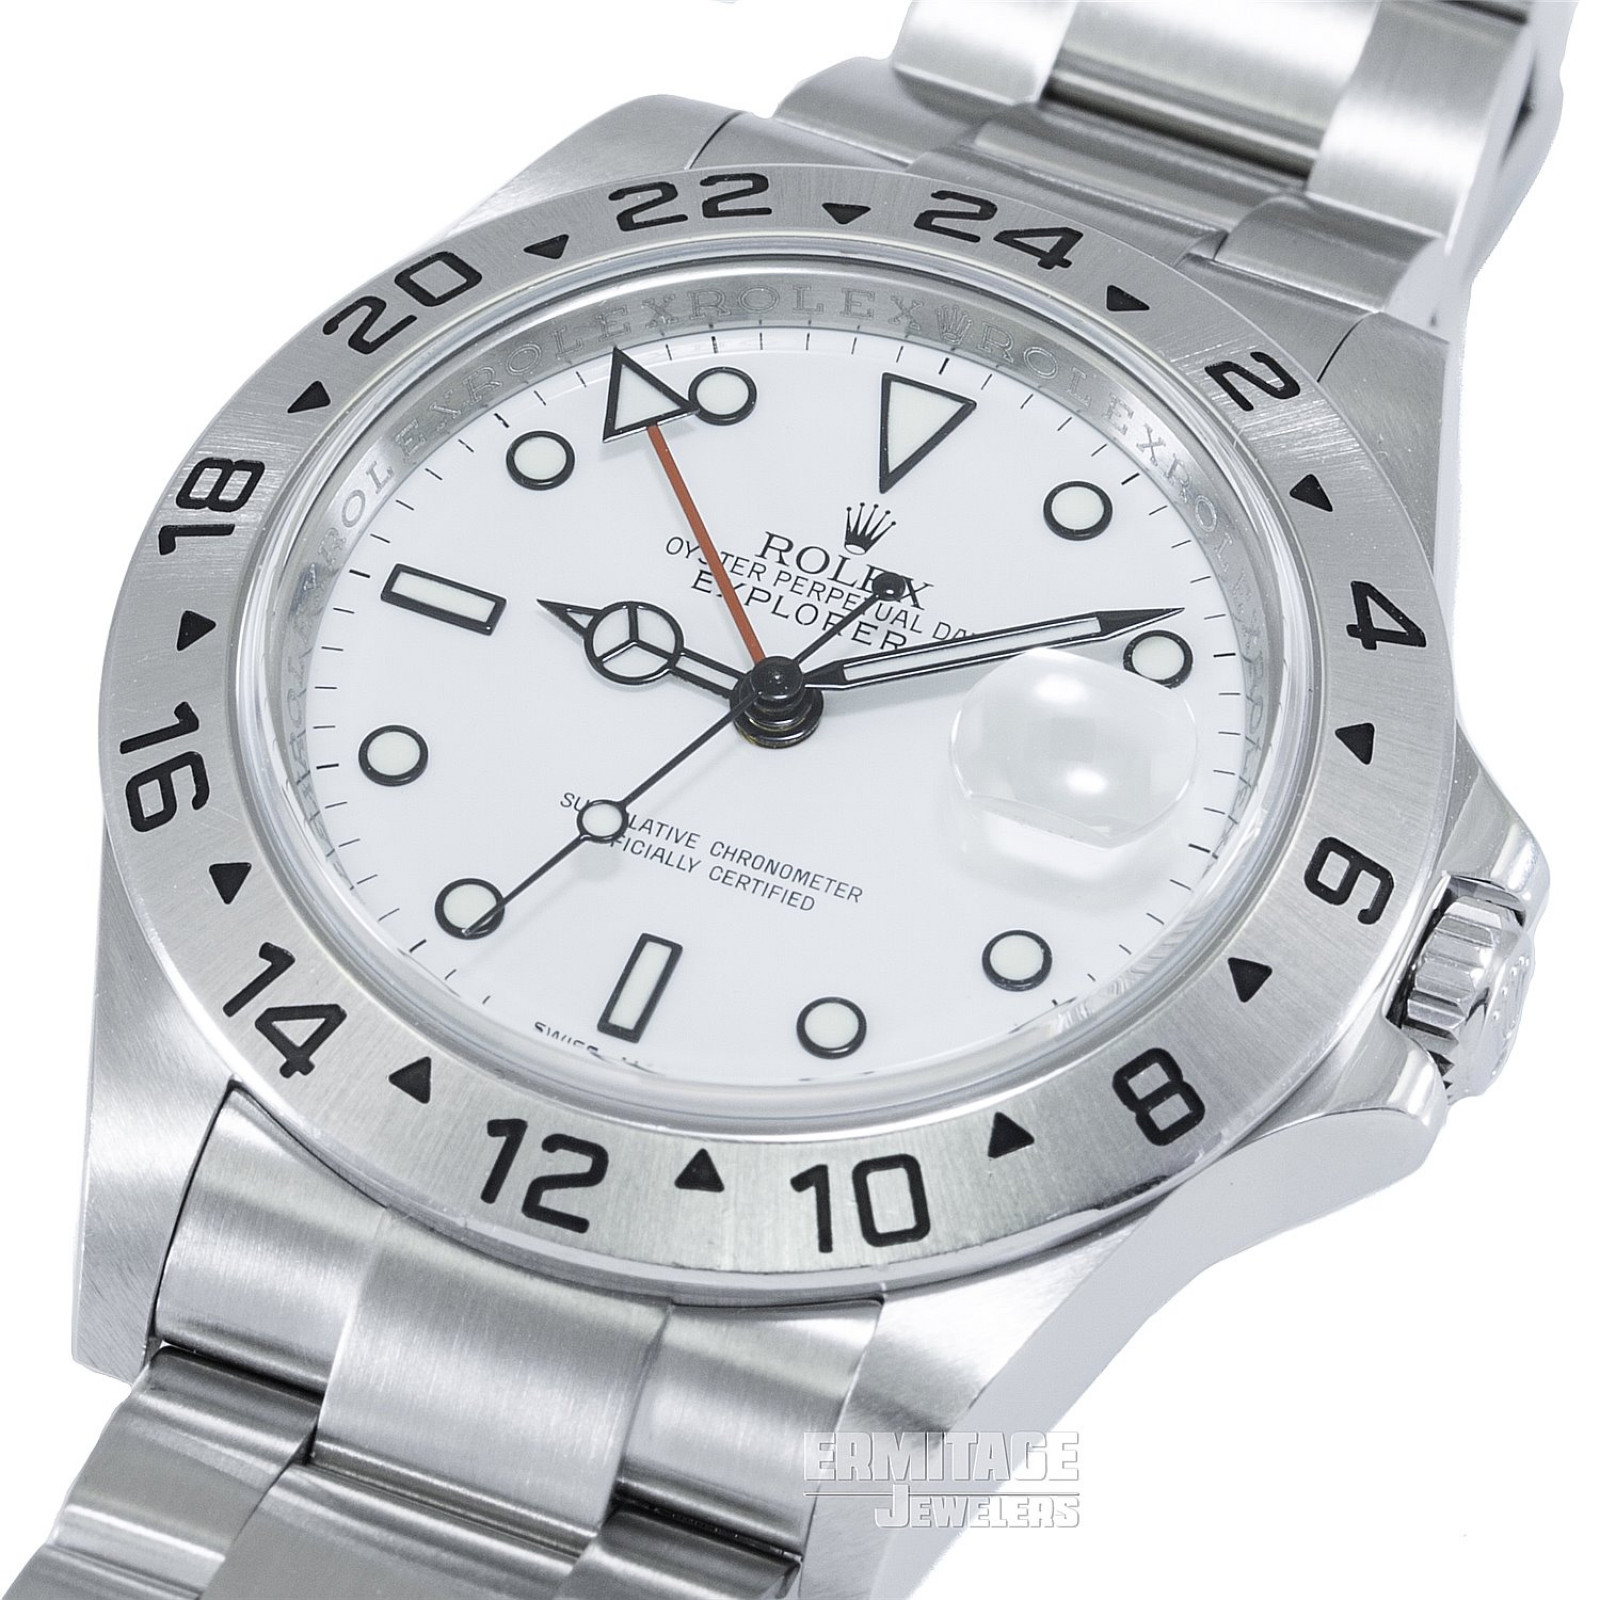 Rolex Explorer II Ref. 16570 Extremely Rare Caliber 3186 Never Been Polished